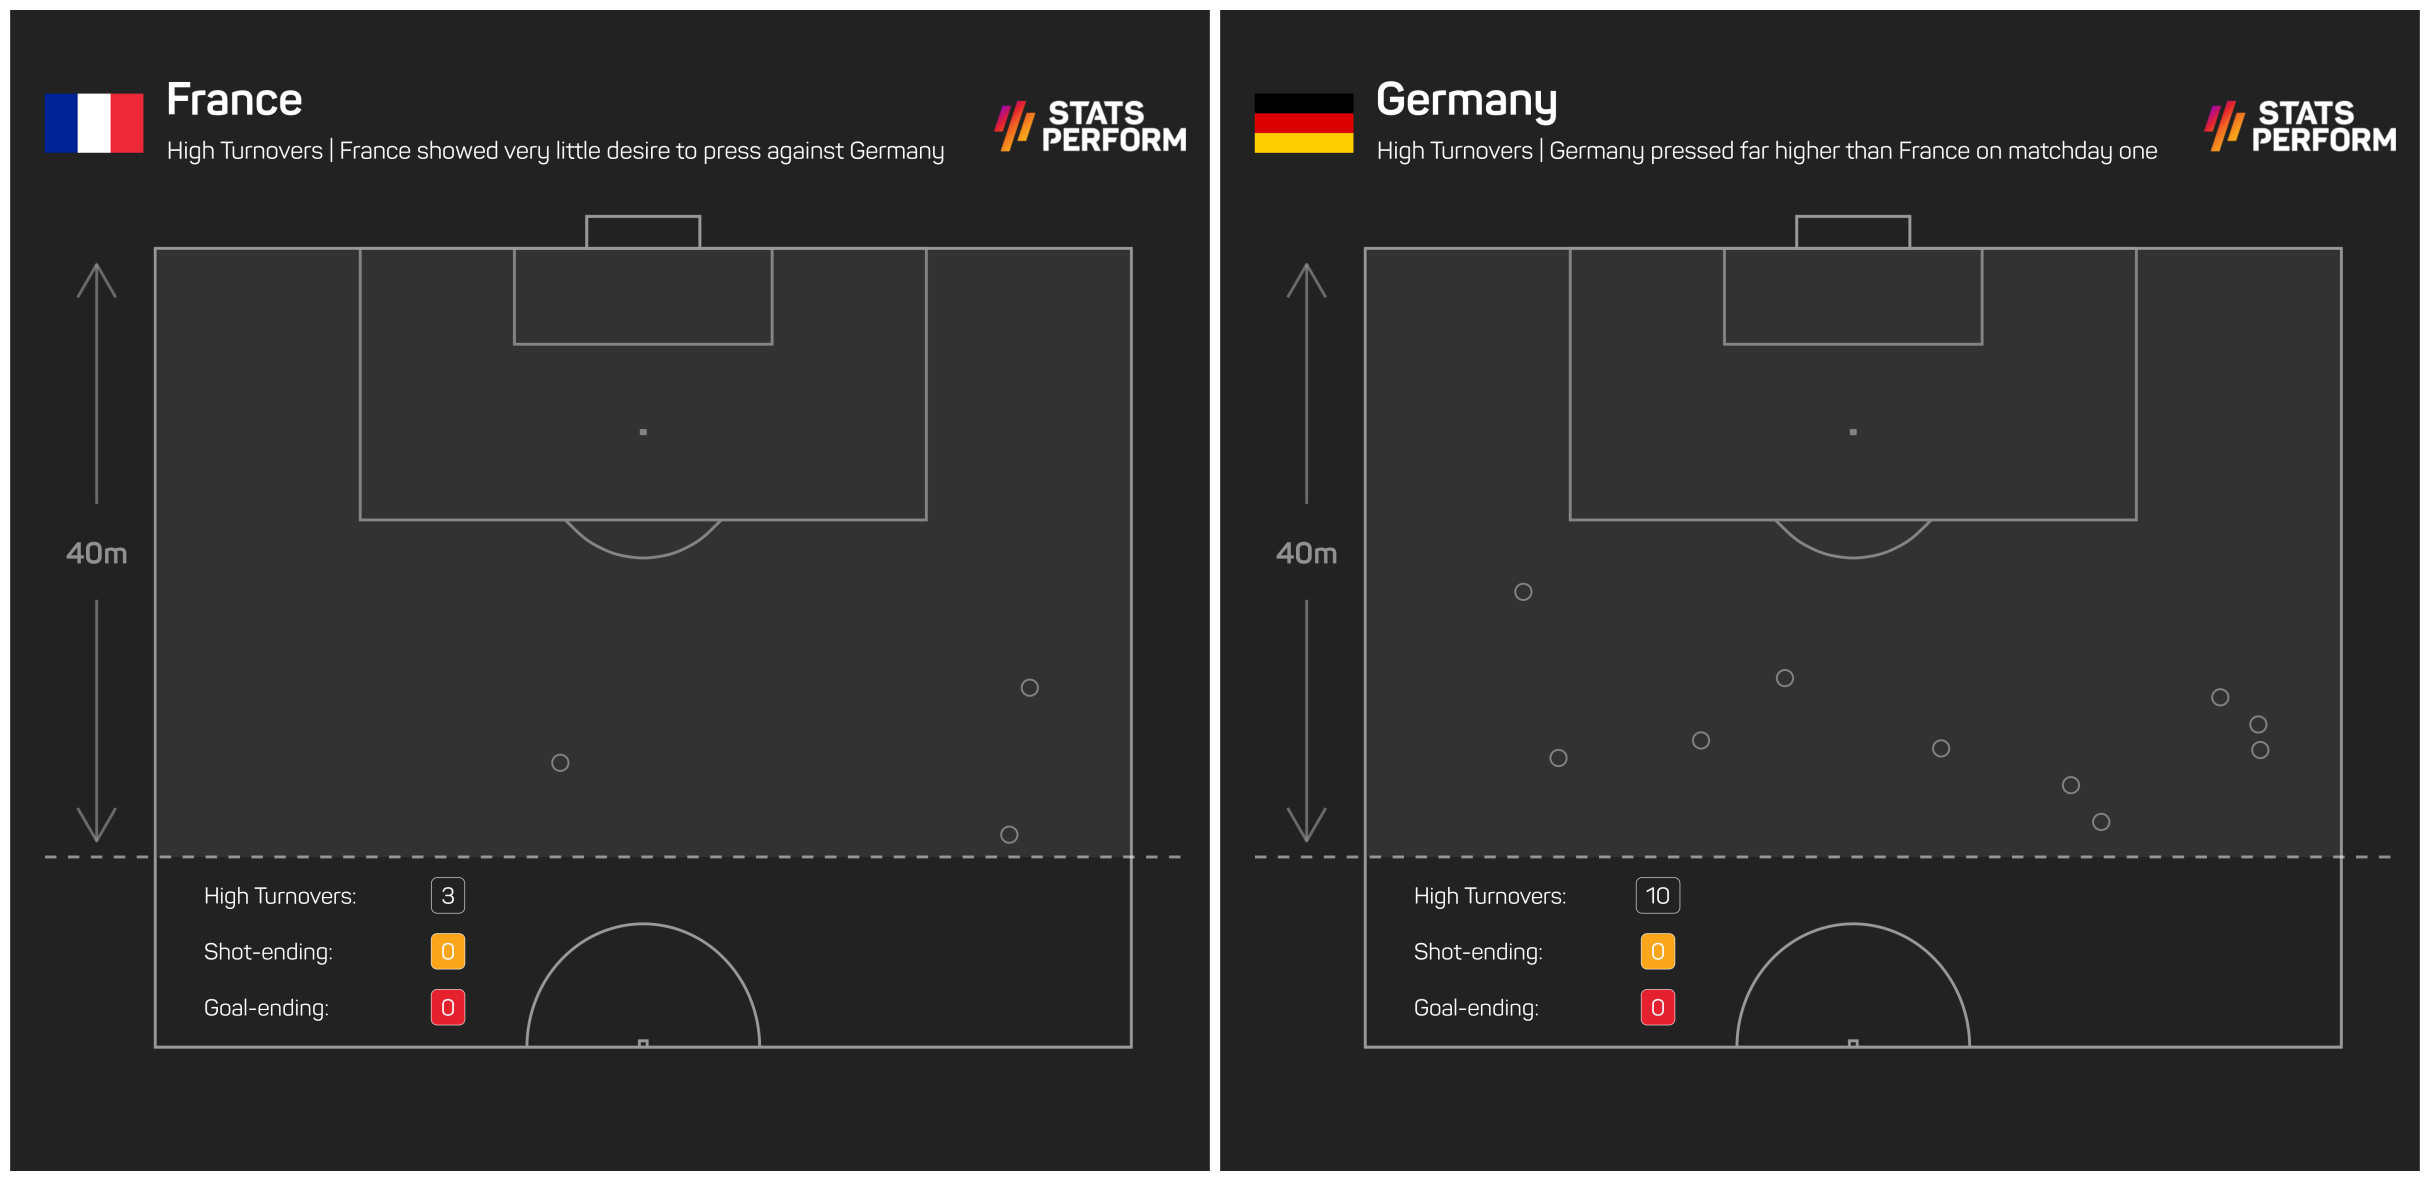 Germany pressed far higher than France on matchday one